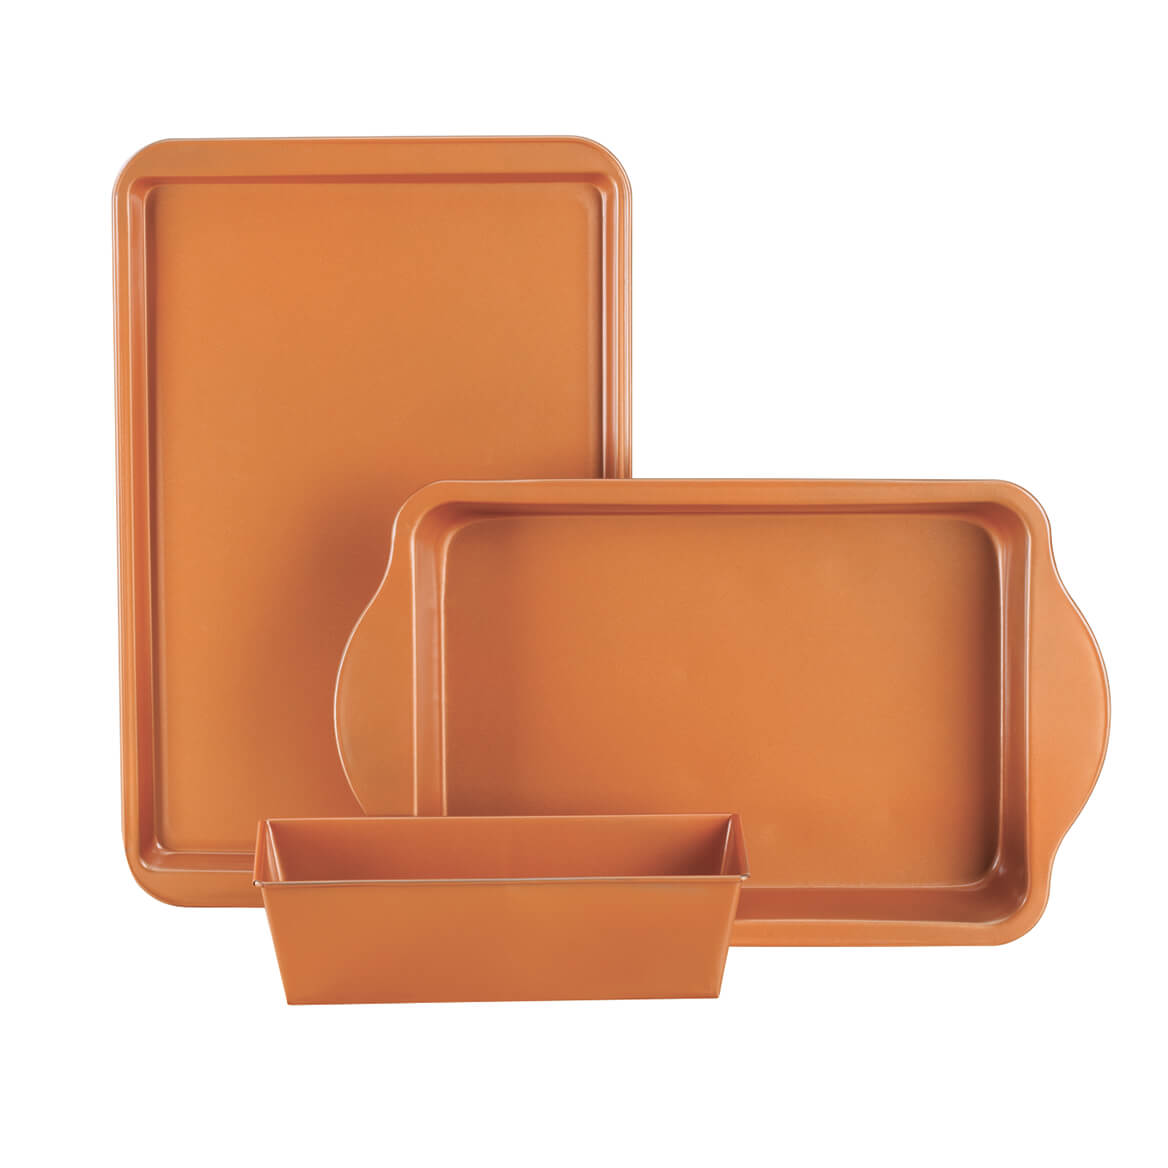 Ceramic Copper Baking Set, 3 Piece